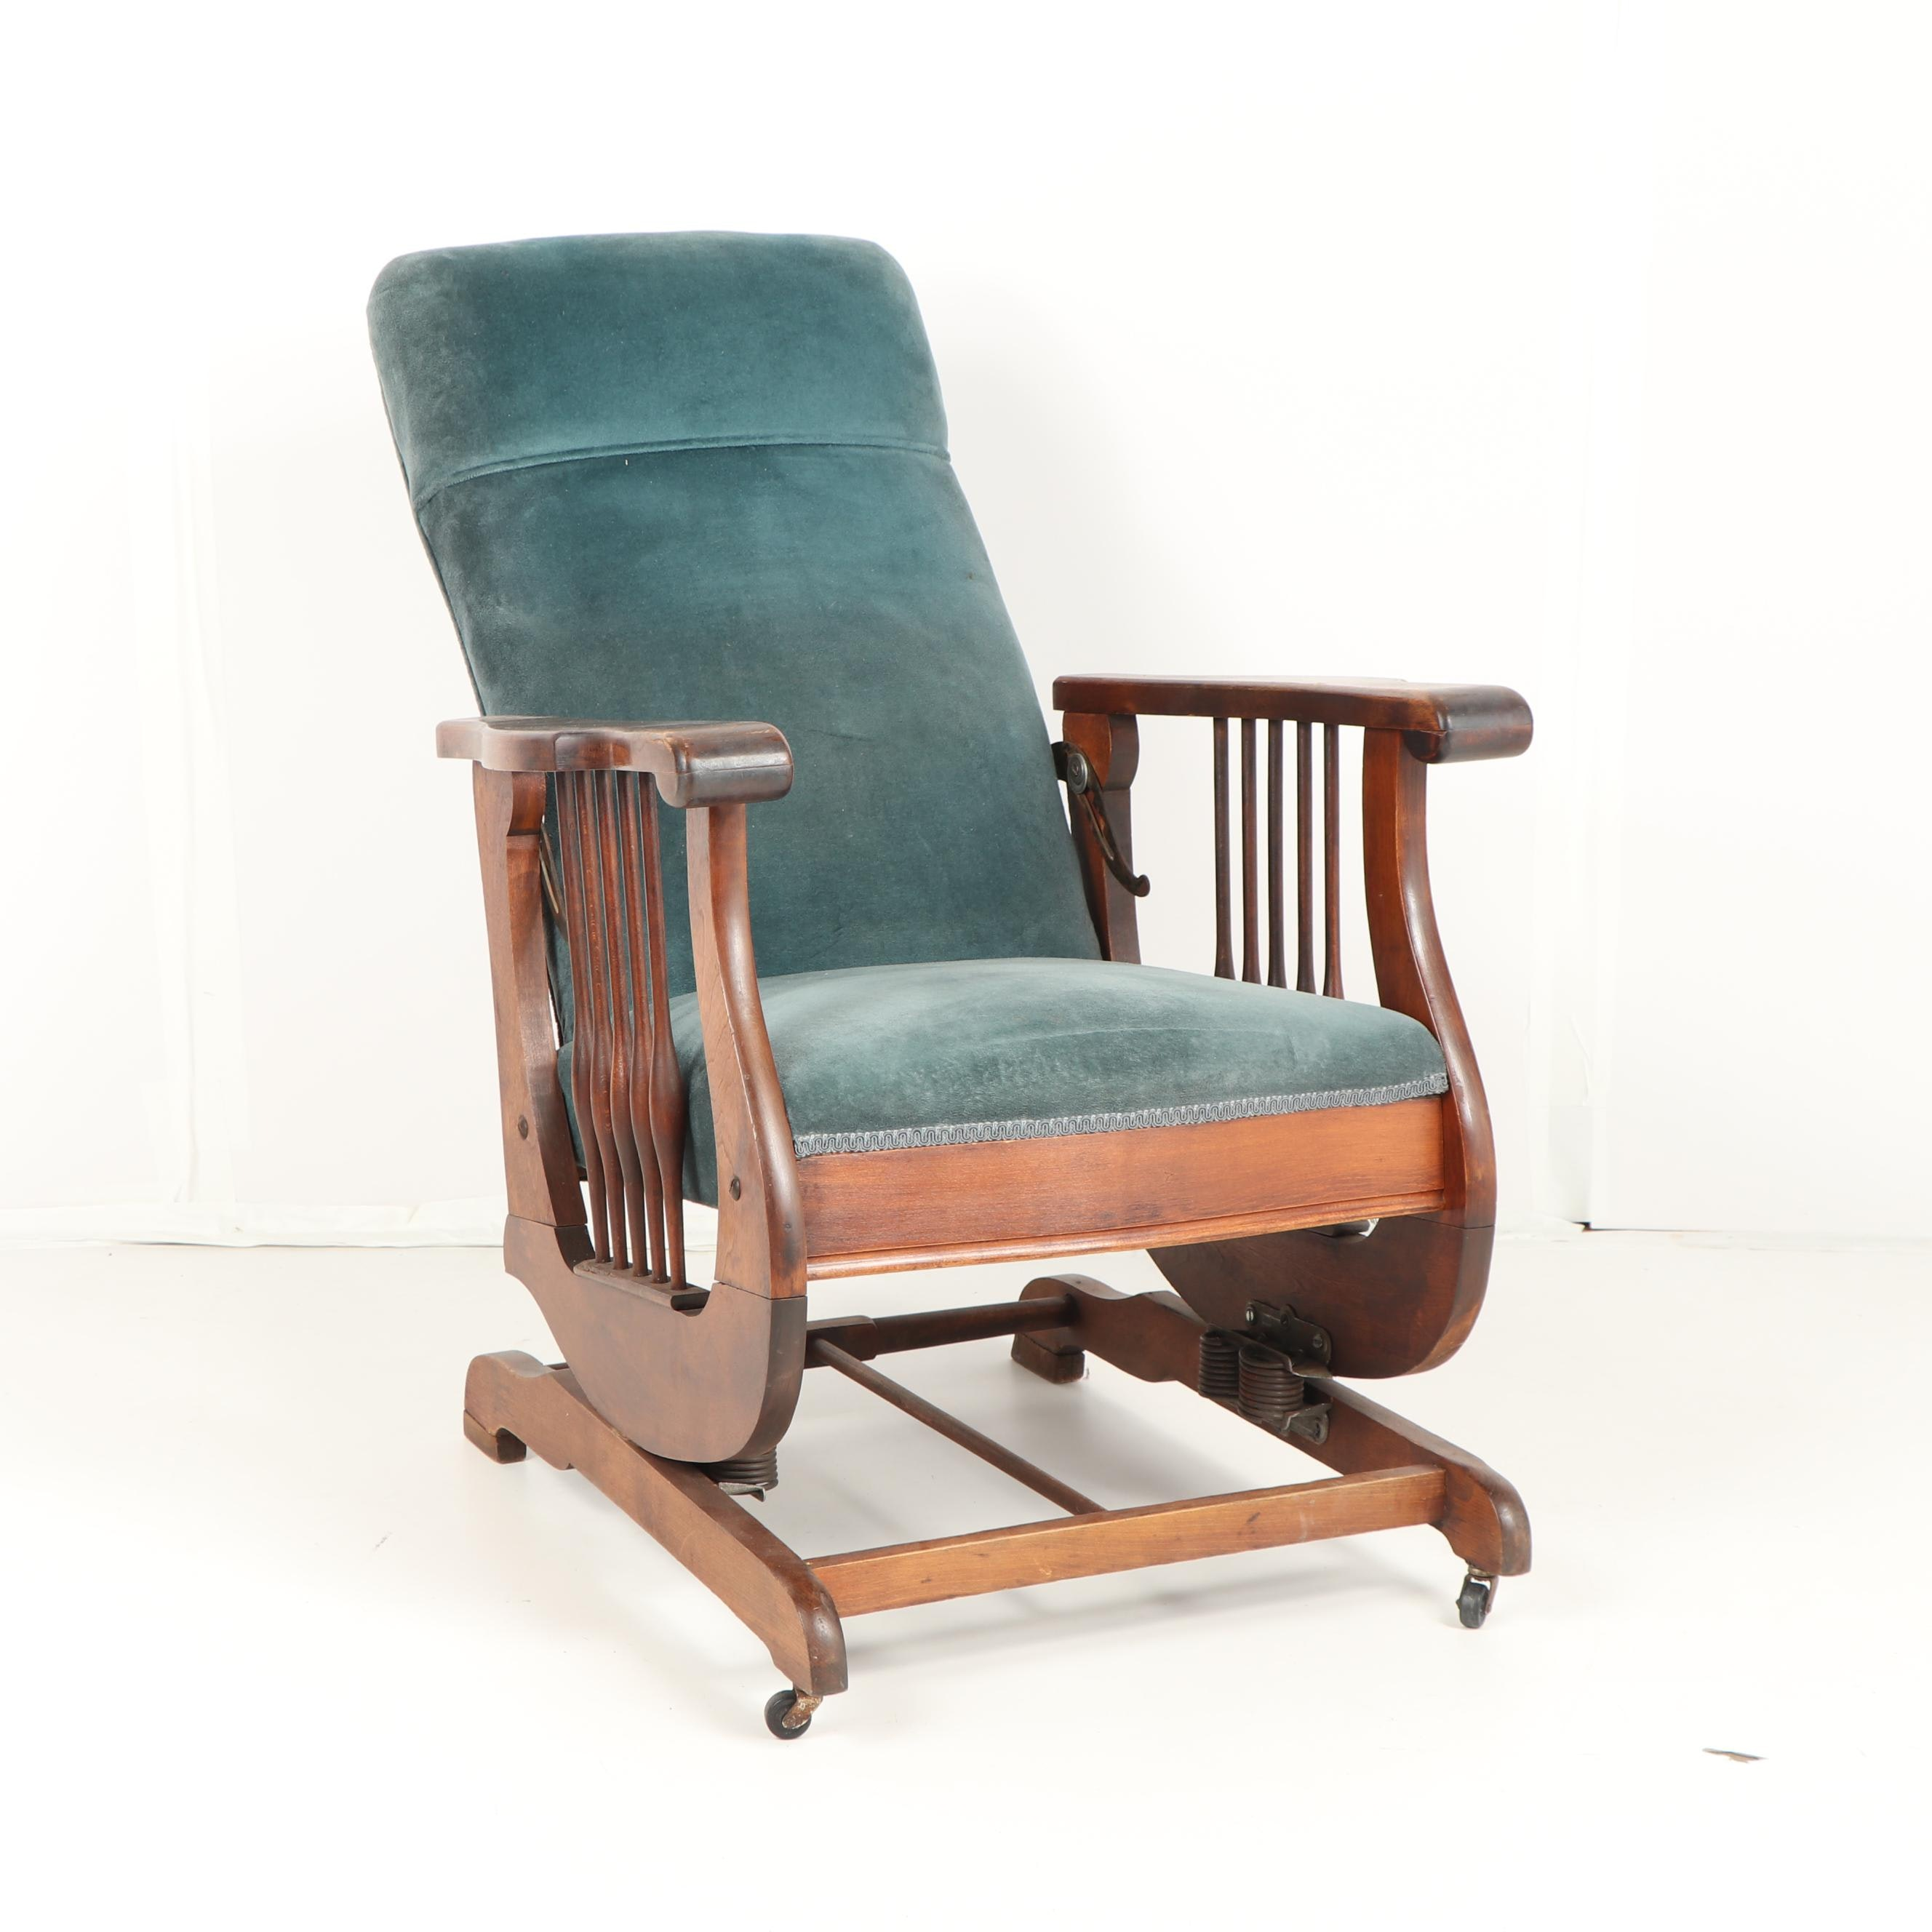 Oak Reclining Rocking Chair, Early- Mid 20th Century